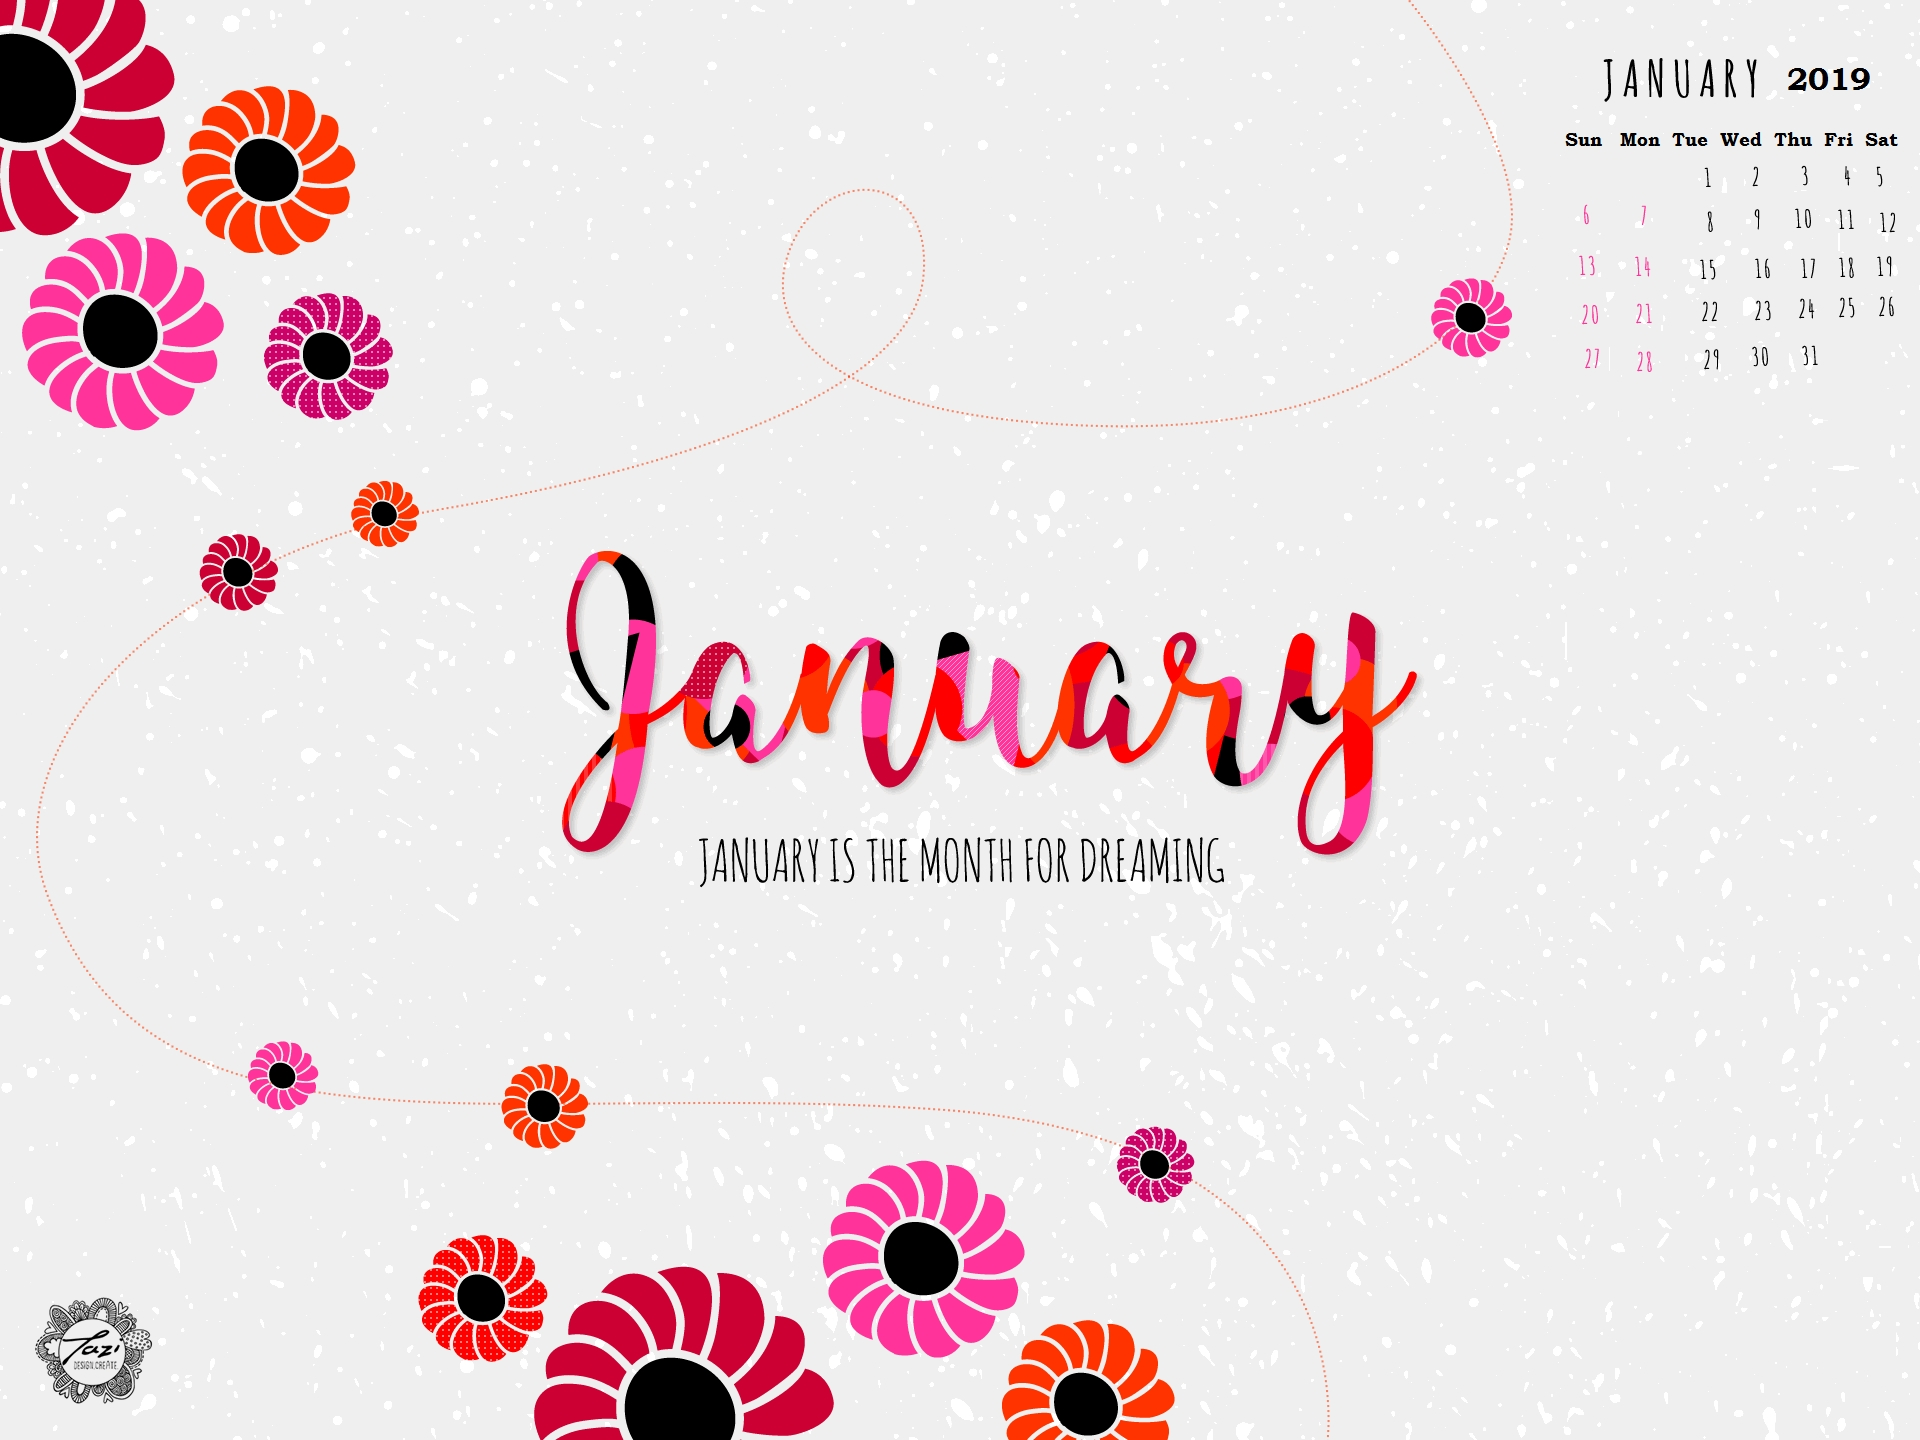 january 2019 hd calendar wallpapers calendar 2019 January 2019 HD Calendar Wallpapers erdferdf